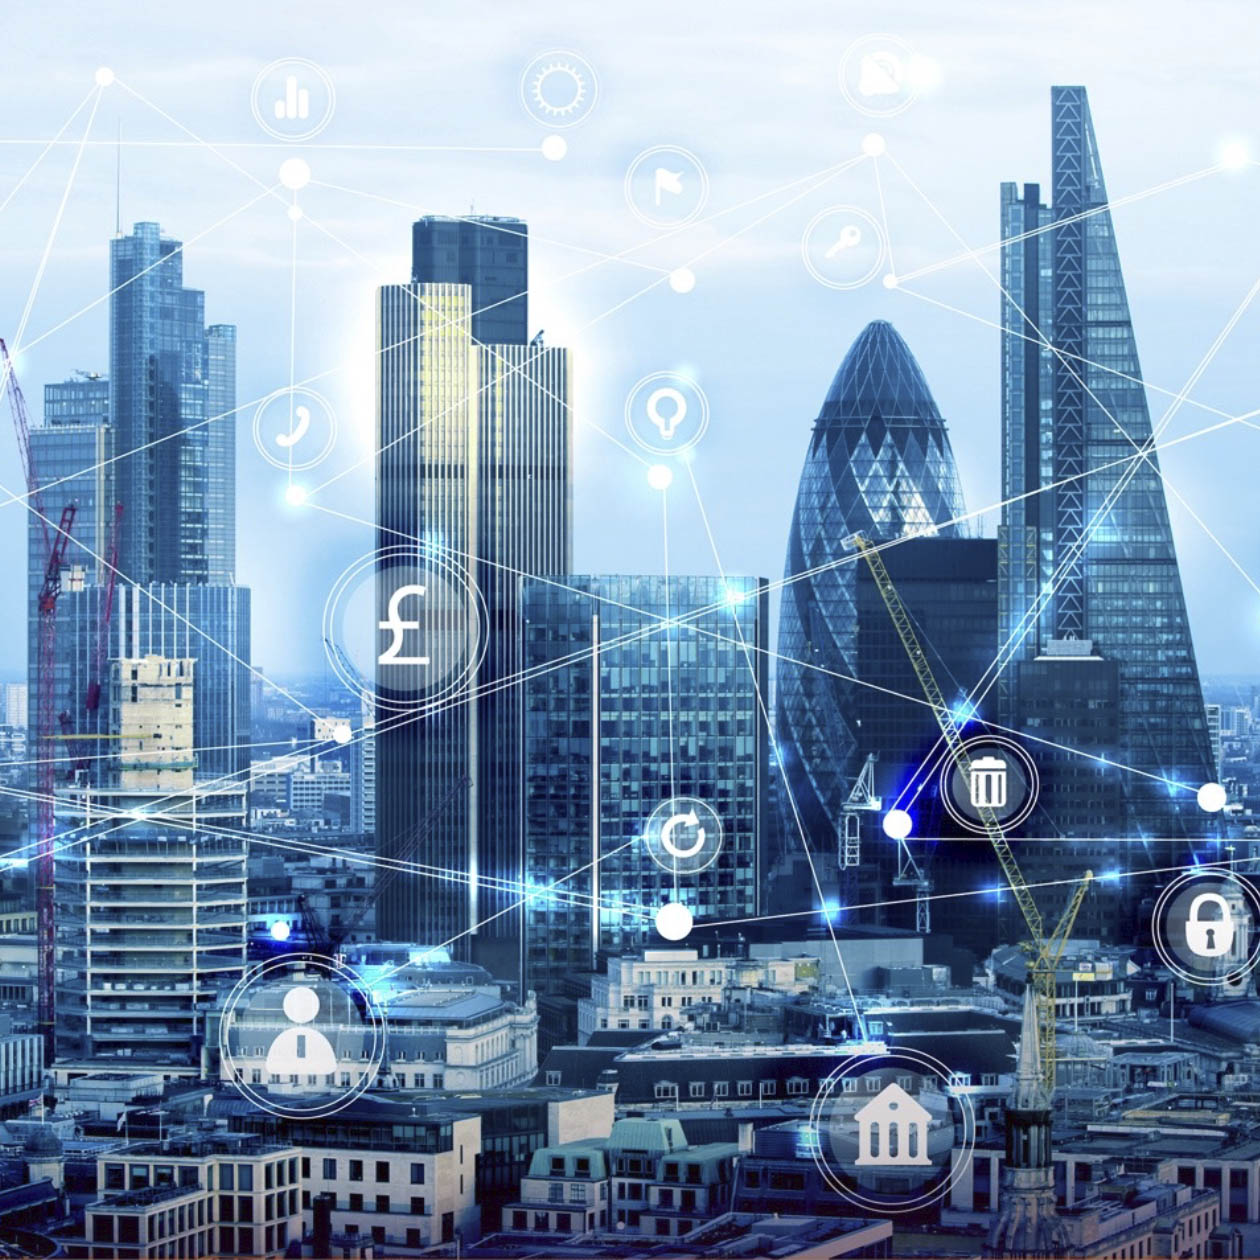 The Kalifa Review: How Can the UK Consolidate Its Global Leadership and Retain Competitiveness in Fintech